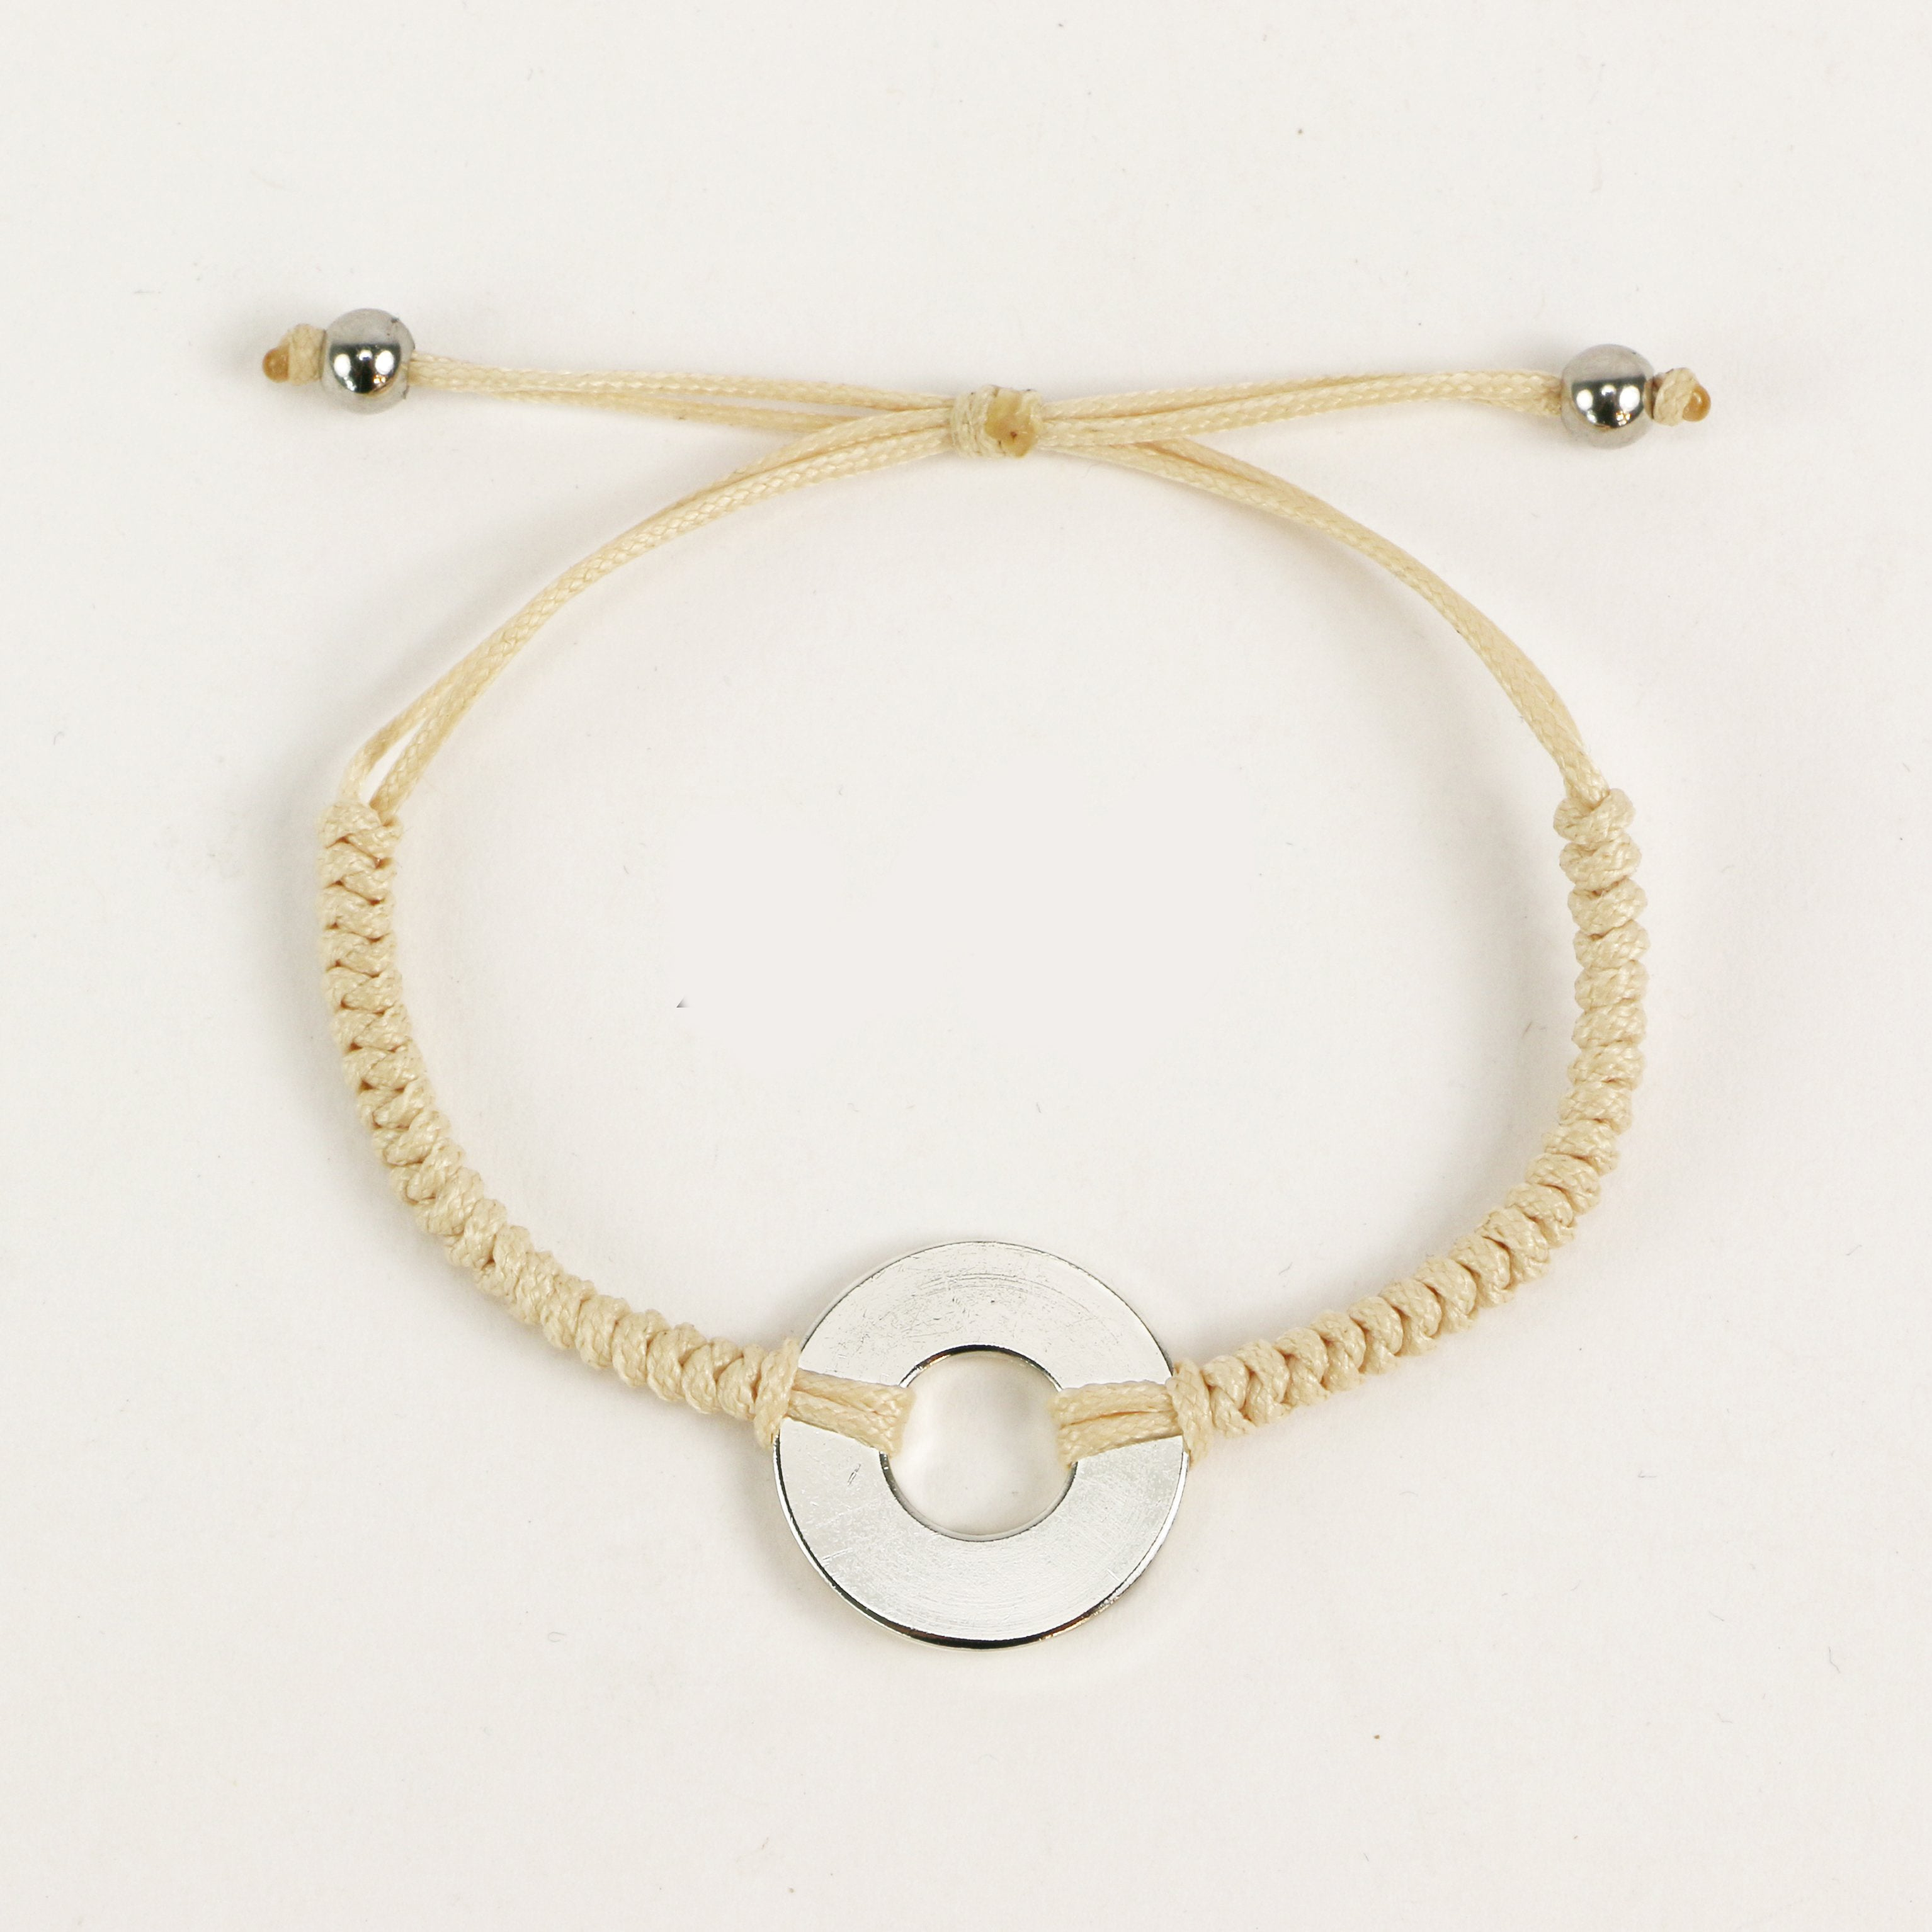 MyIntent Refill Round Bracelet Cream color with Silver Token